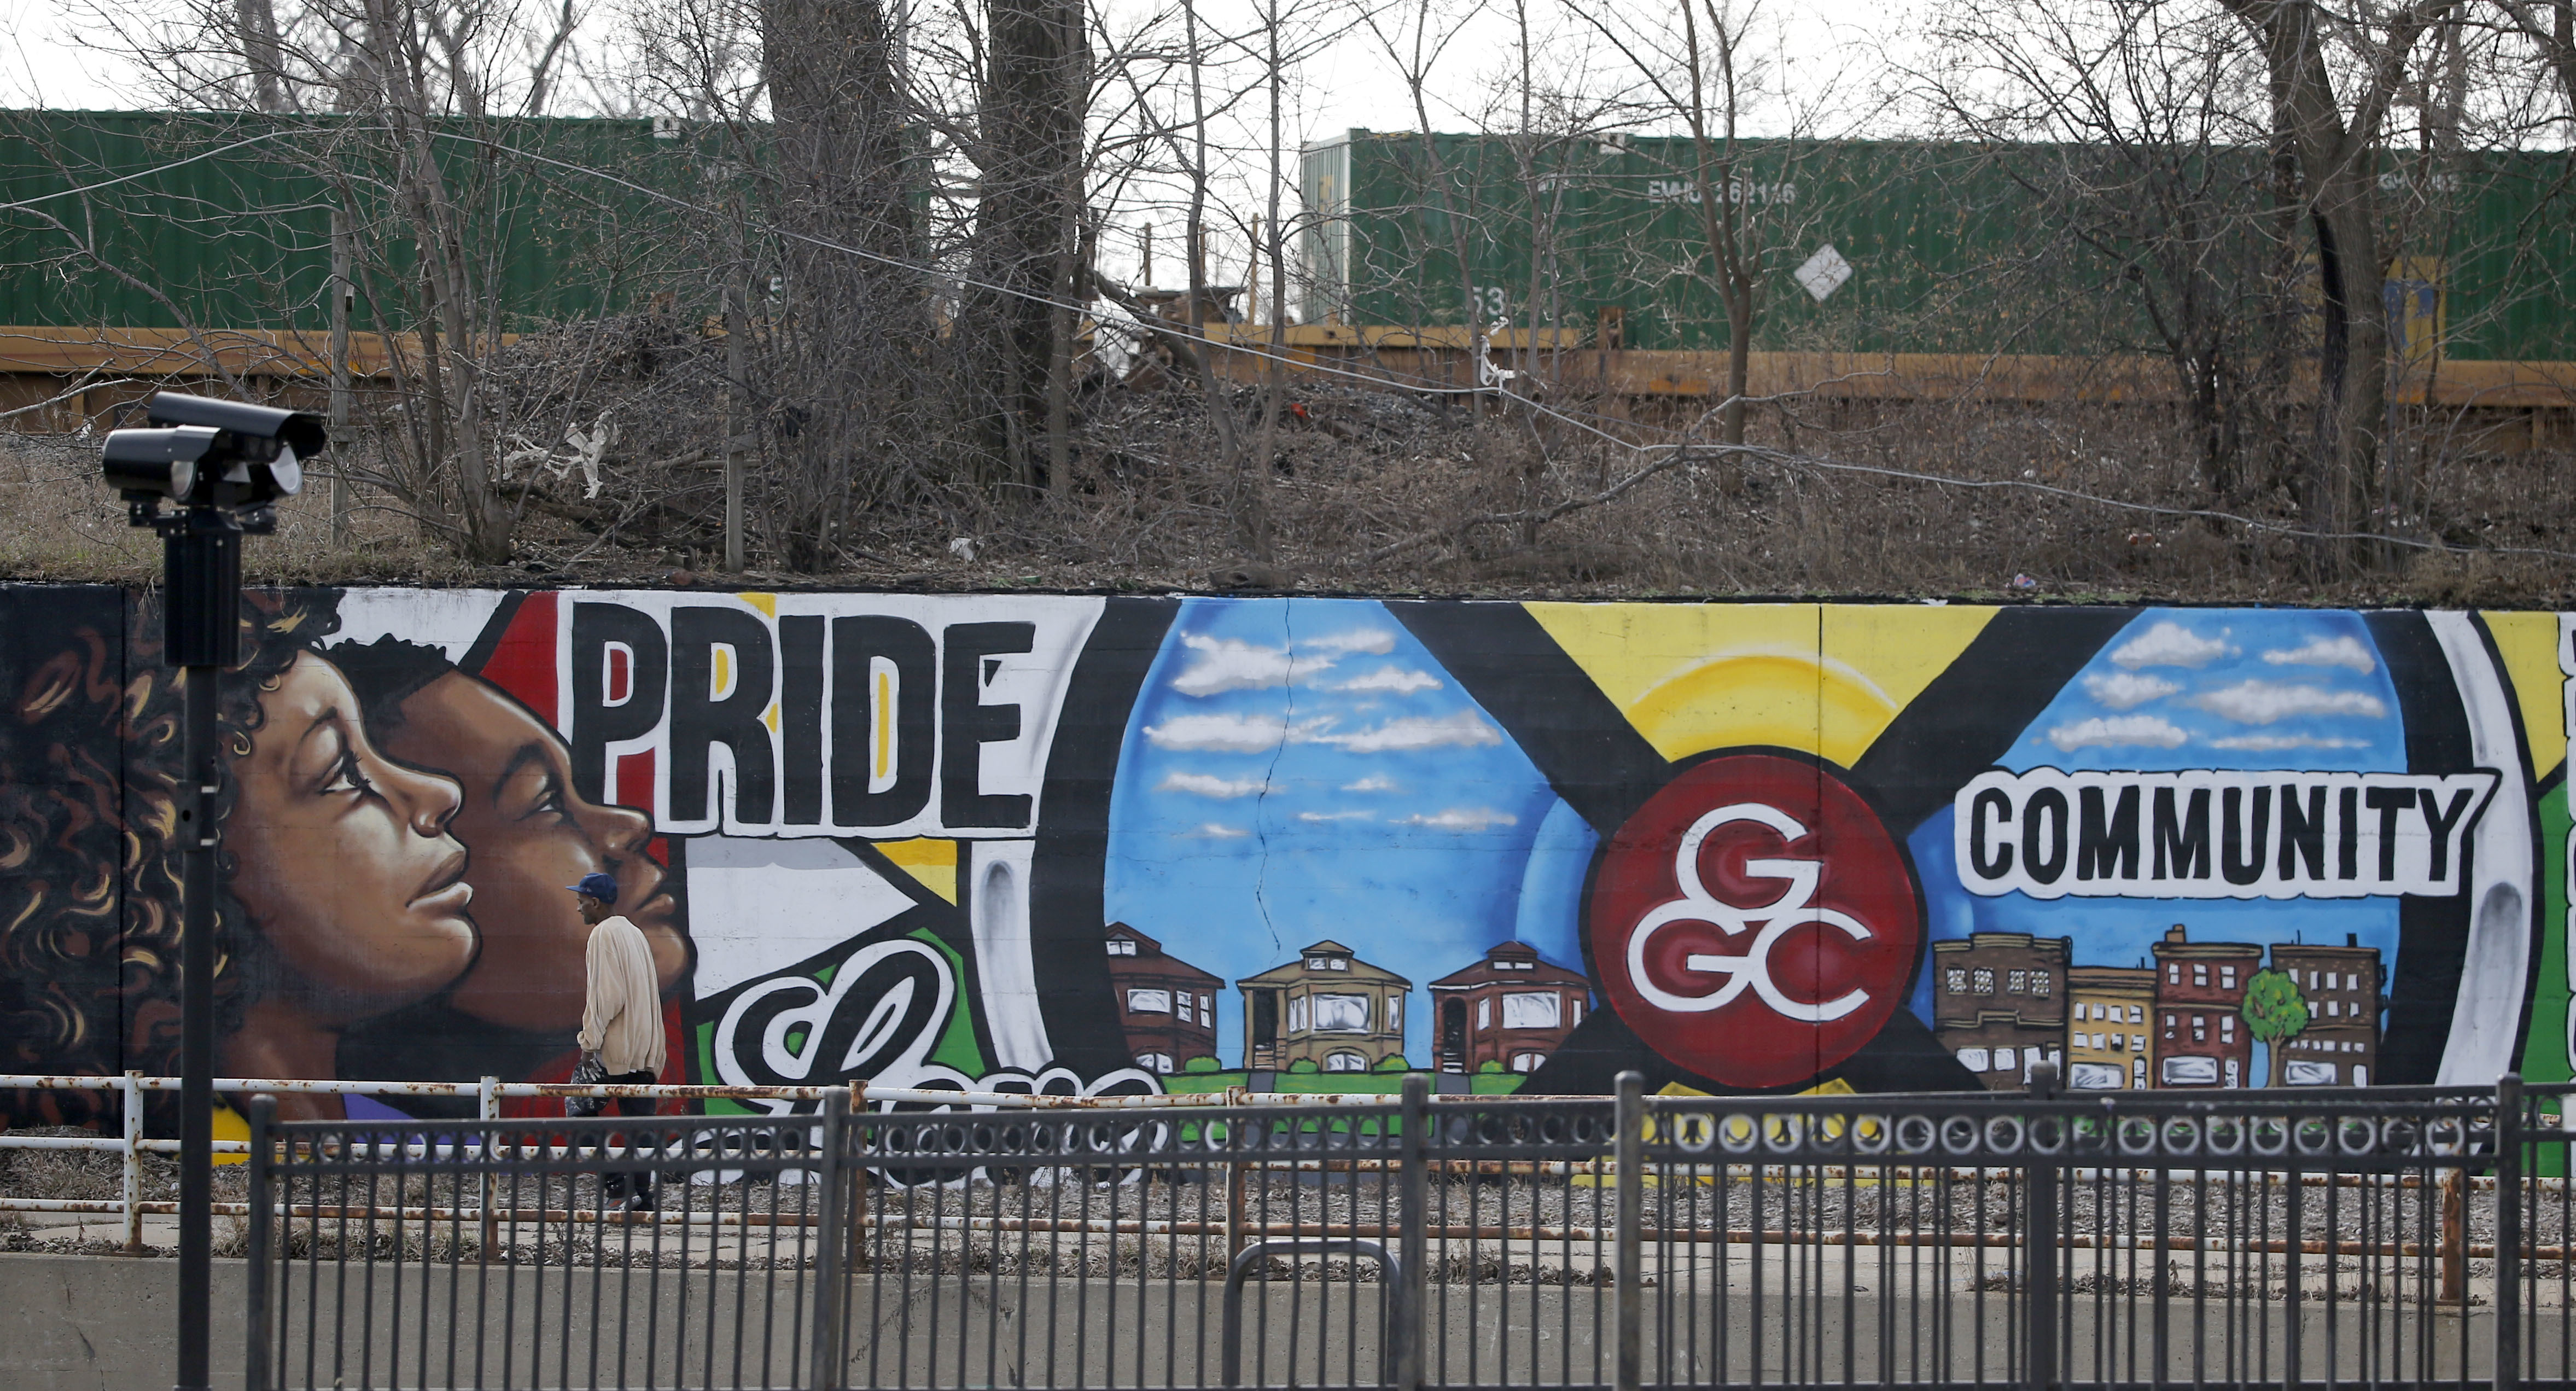 In this Tuesday, Feb. 21, 2017, photo, a lone pedestrian walks past a mural championing the Greater Grand Crossing neighborhood of Chicago where access to the Norfolk Southern rail yard goes unimpeded in Chicago. The 2015 heist of over 100 guns, preceded by one in 2014, and another last September from the same 63rd Street Rail Yard highlight a tragic confluence. Chicago's biggest rail yards are on the gang- and homicide-plagued South and West Sides where most of the city's hundreds of killings happened last year. (AP Photo/Charles Rex Arbogast)